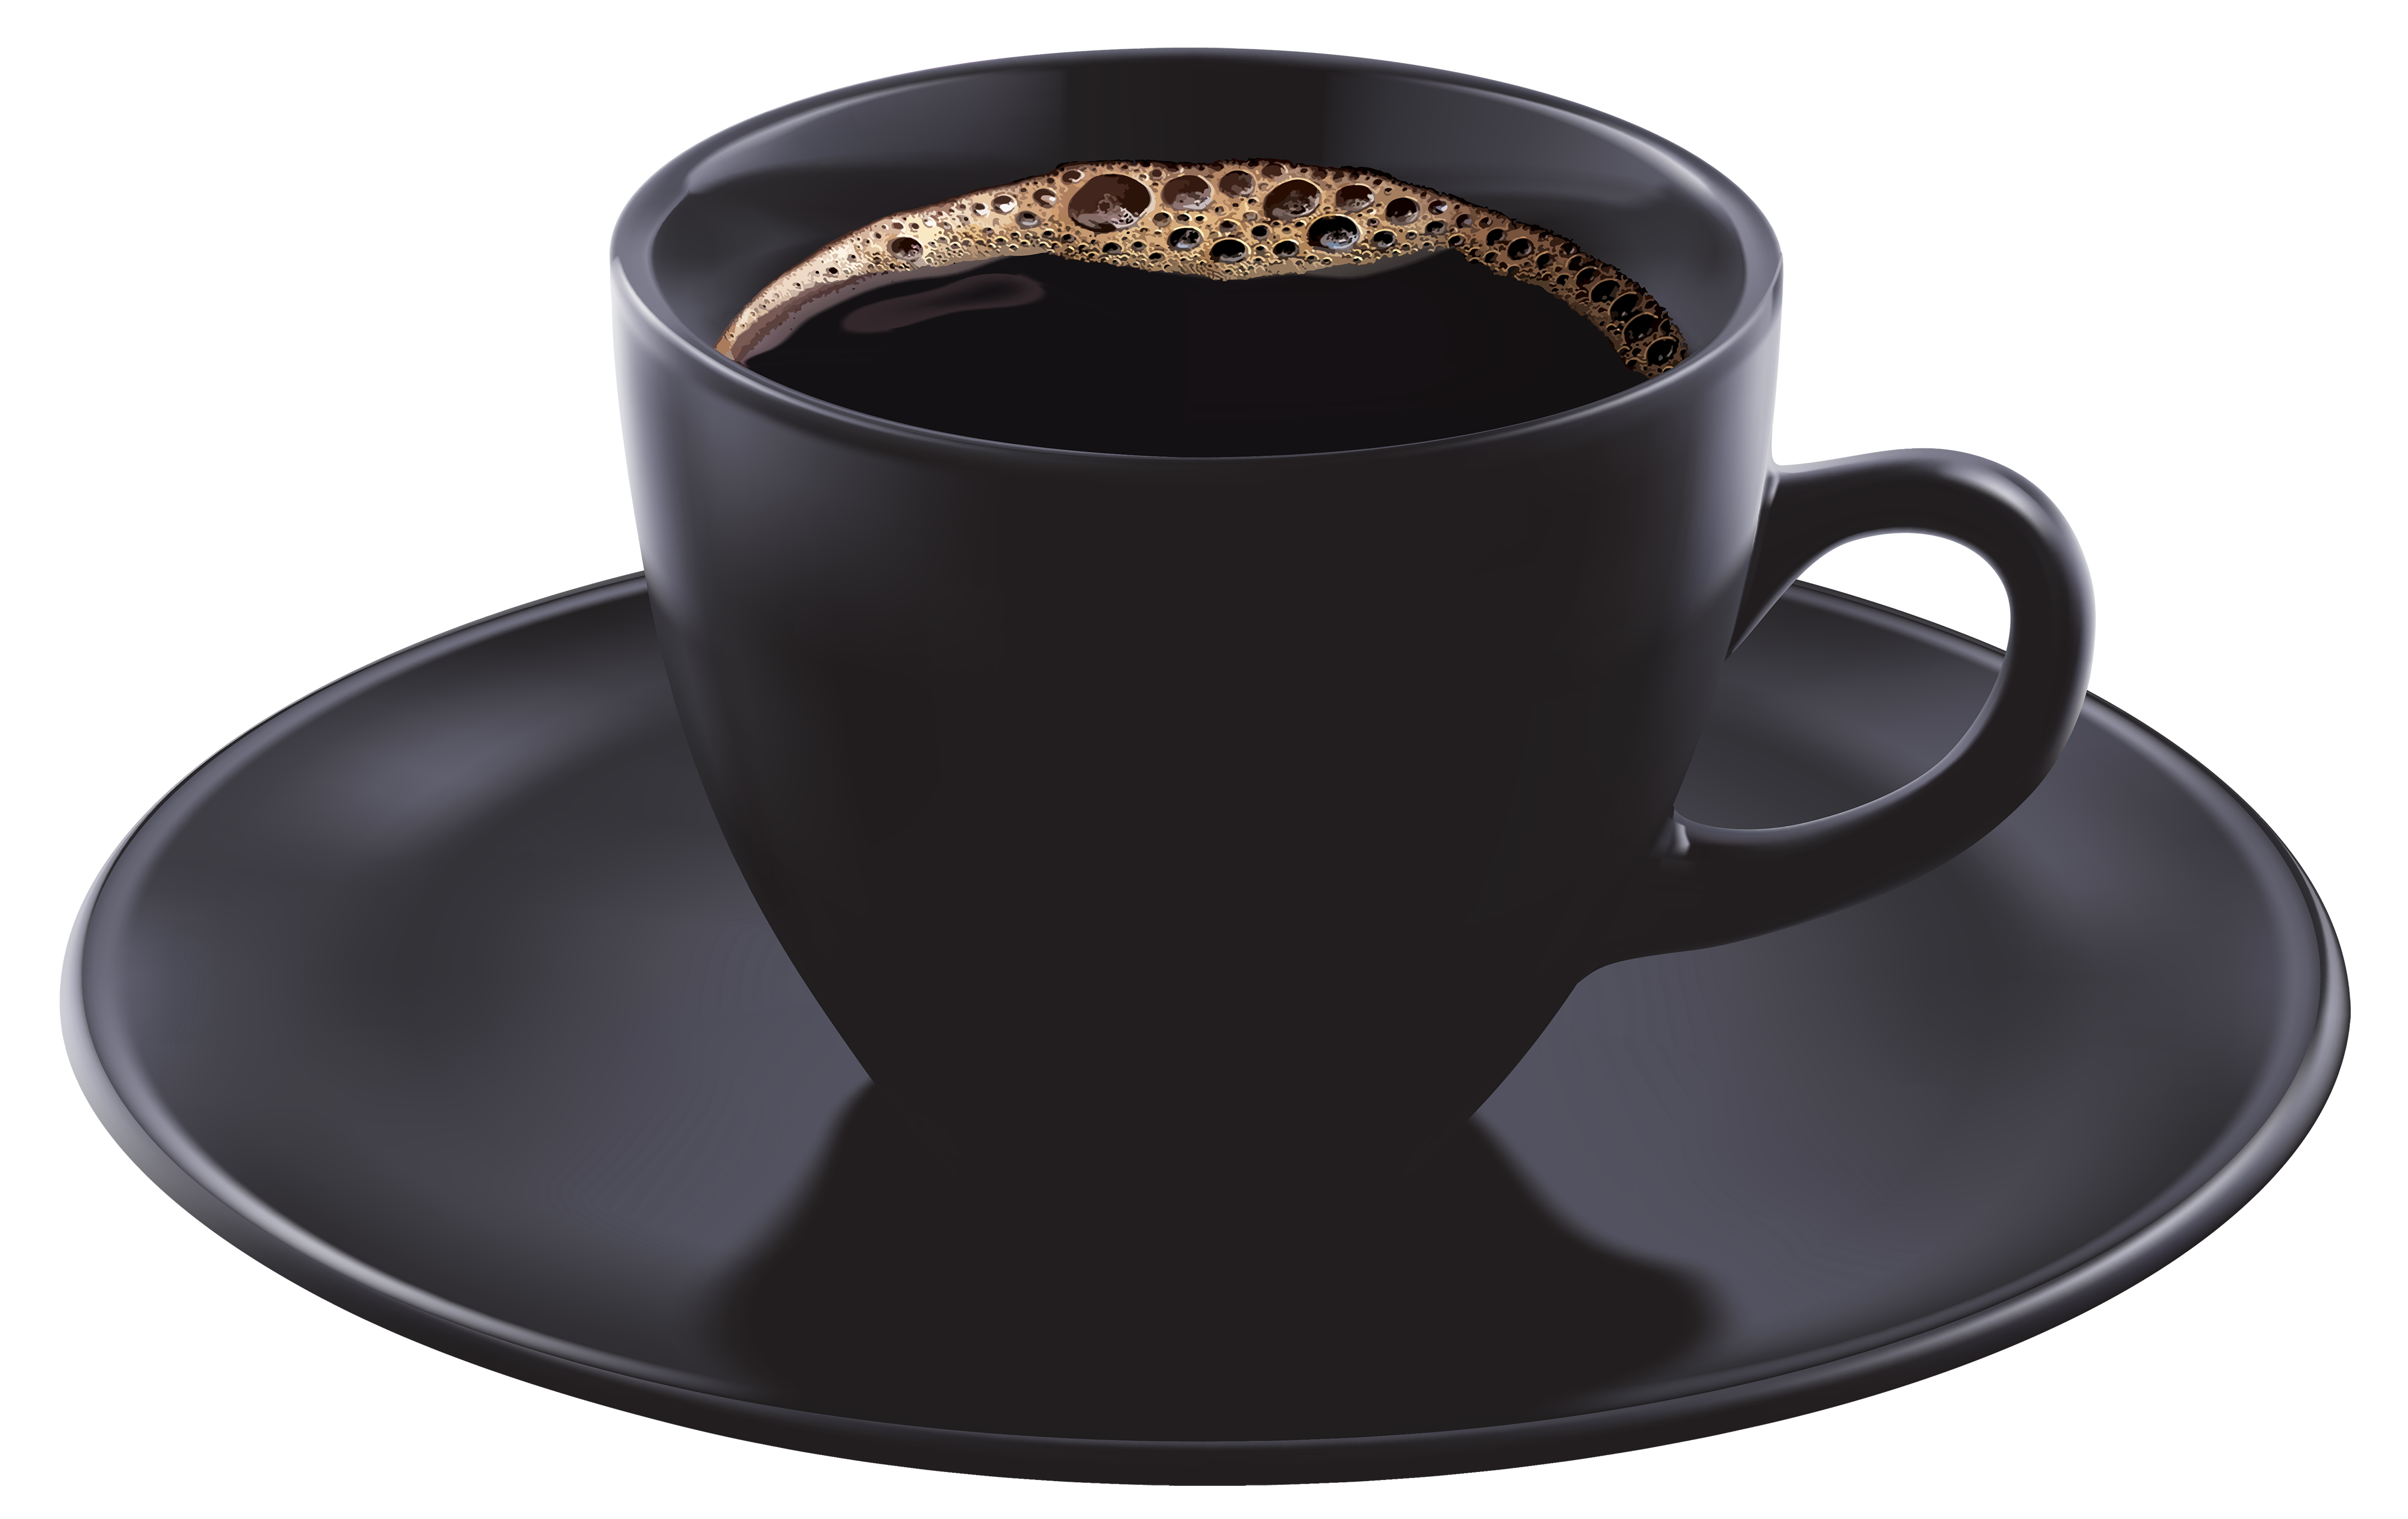 Coffee cup png transparent background. Black clipart image gallery